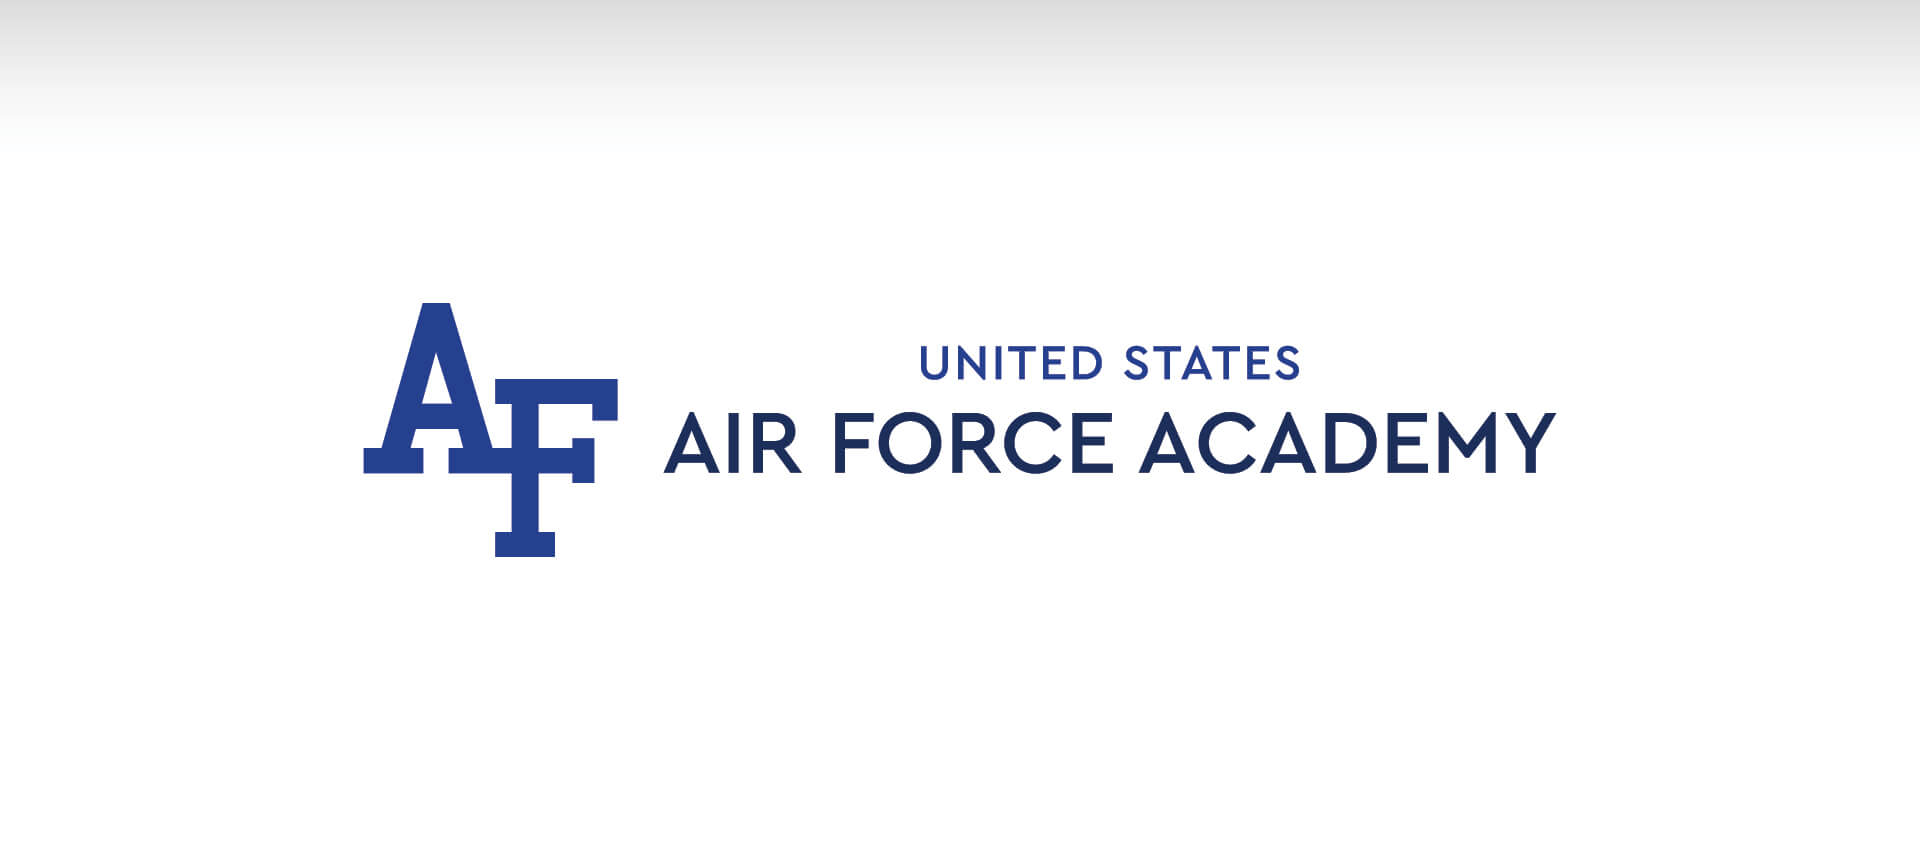 USAFA Logo - United States Air Force Academy: The Power of a Unified Voice | Monigle